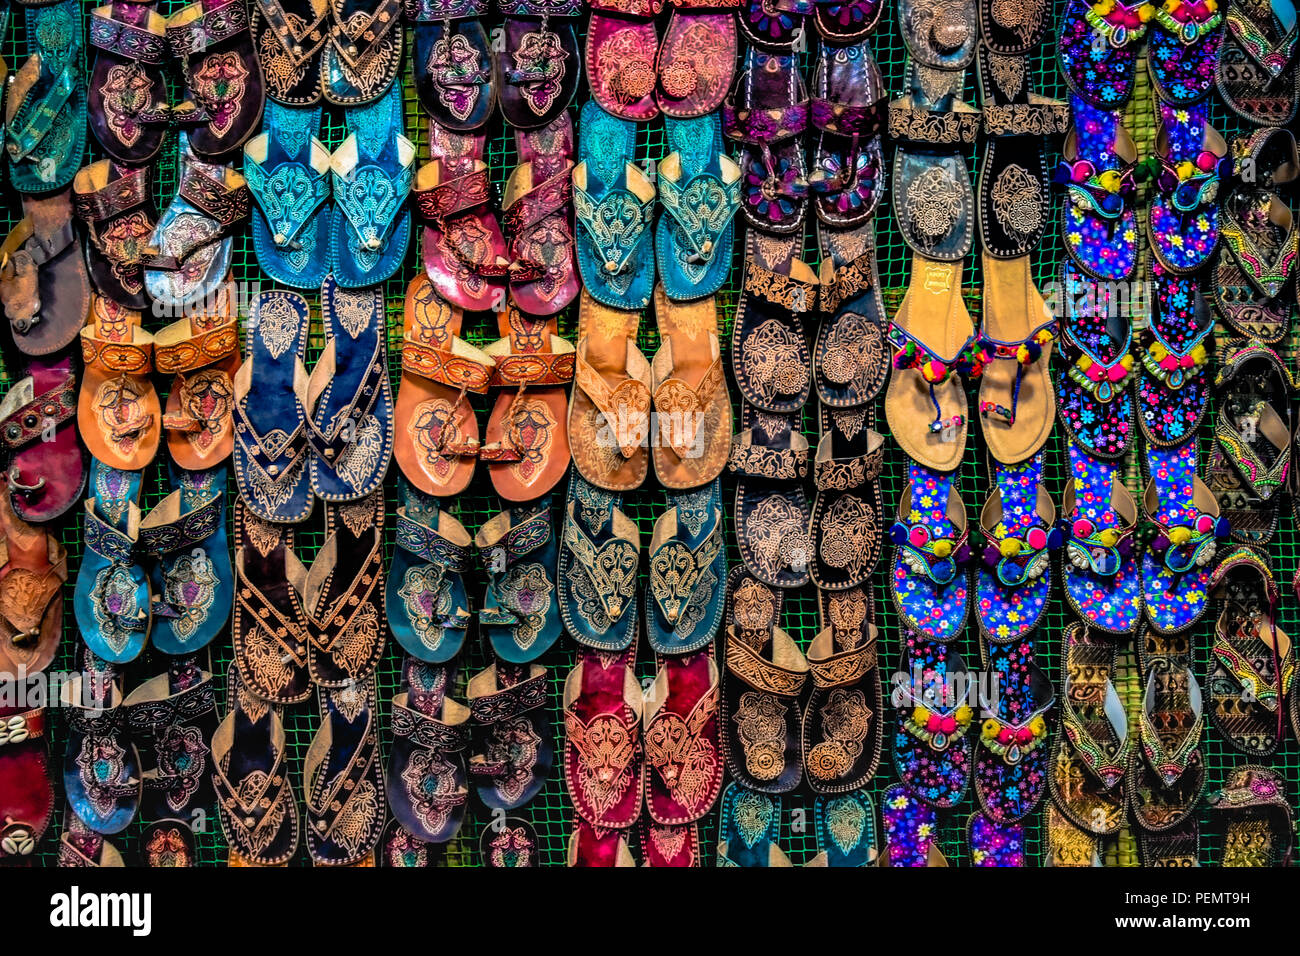 928ab8deb91e Kolhapuri Chappal- Colorful and variety of Ladies Ethnic Footwear displayed  on sale at the street